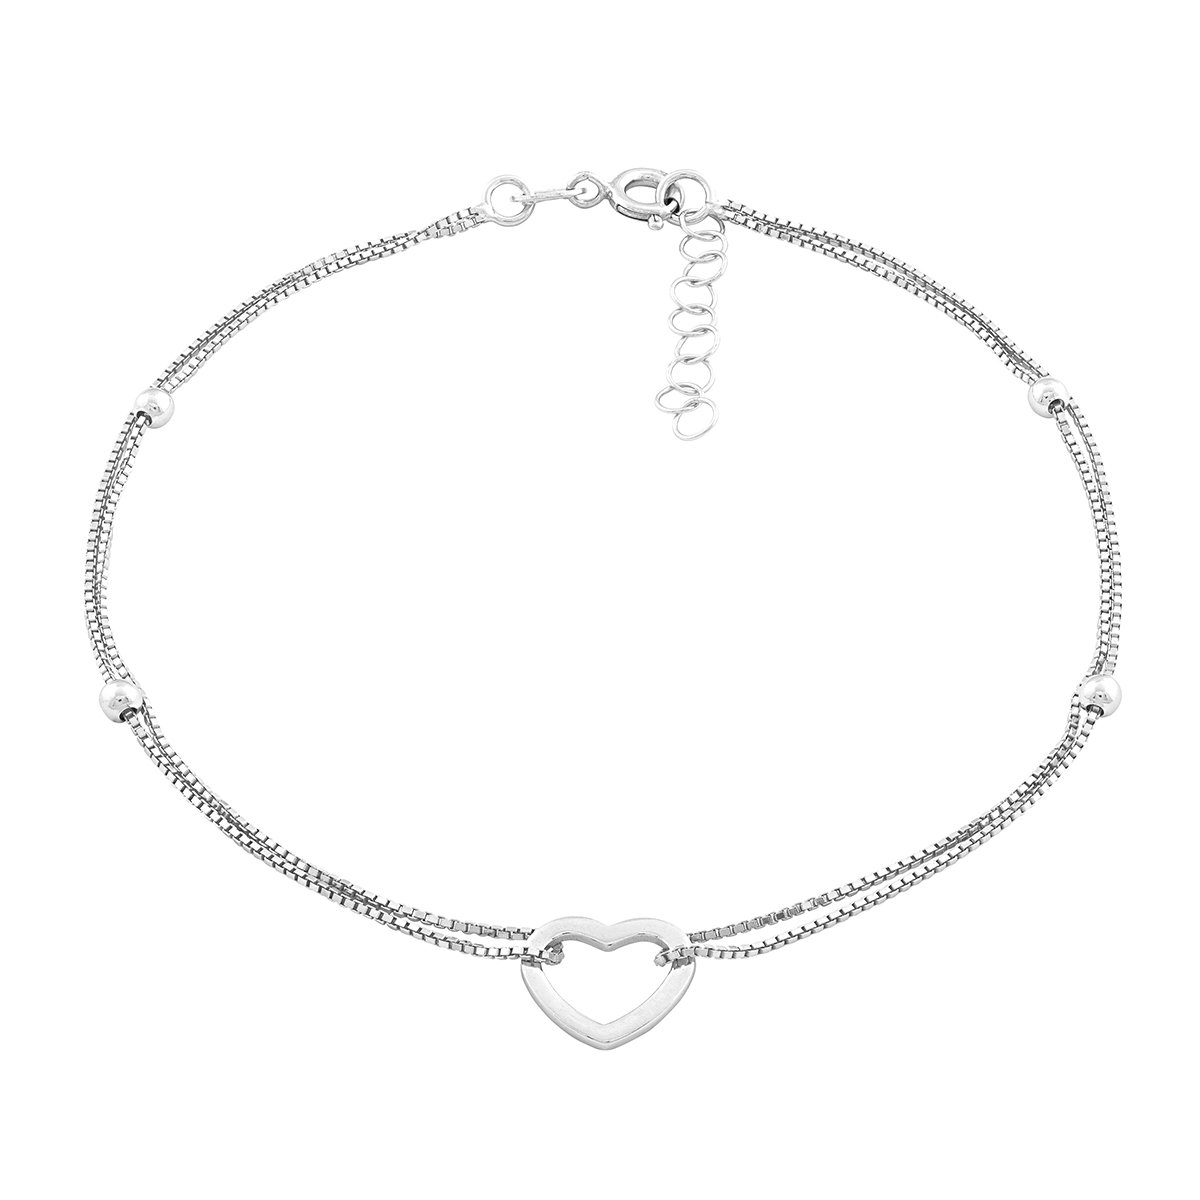 Beaux Bijoux Sterling Silver Italian 9'' + 1'' Extension Double Strand Heart and Beads Anklet